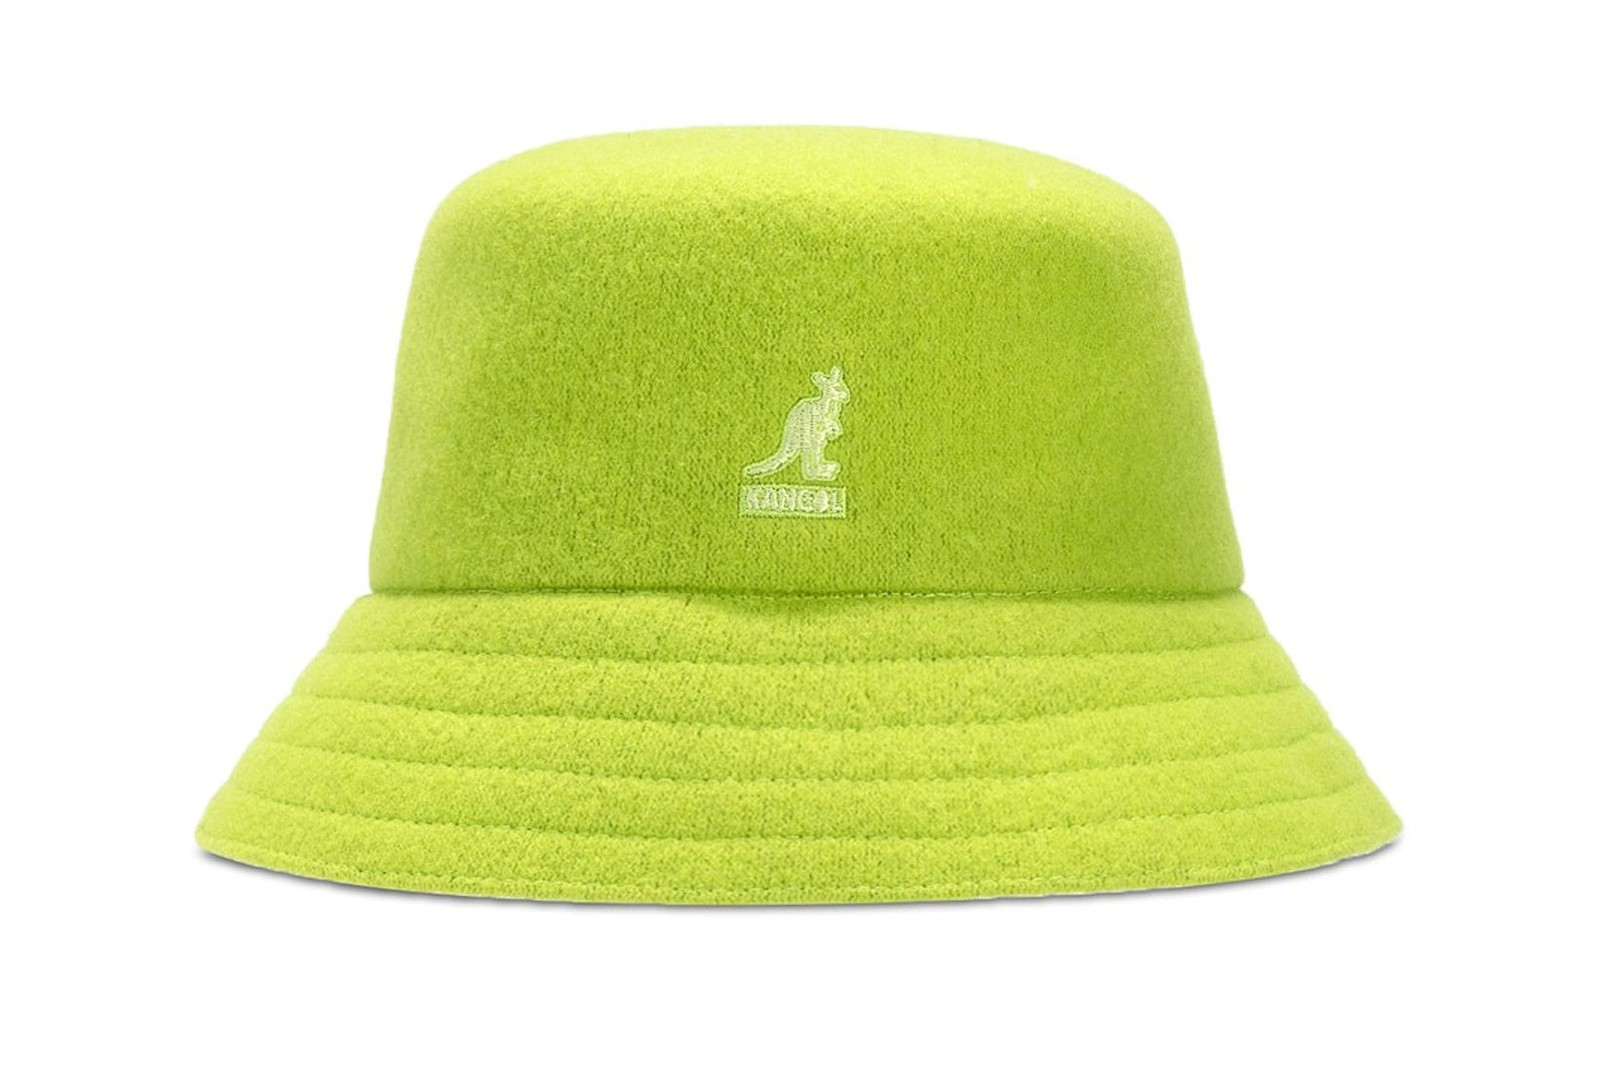 Prada bucket hat triangle logo plaque neon fluo fluorescent yellow fashion women accessories